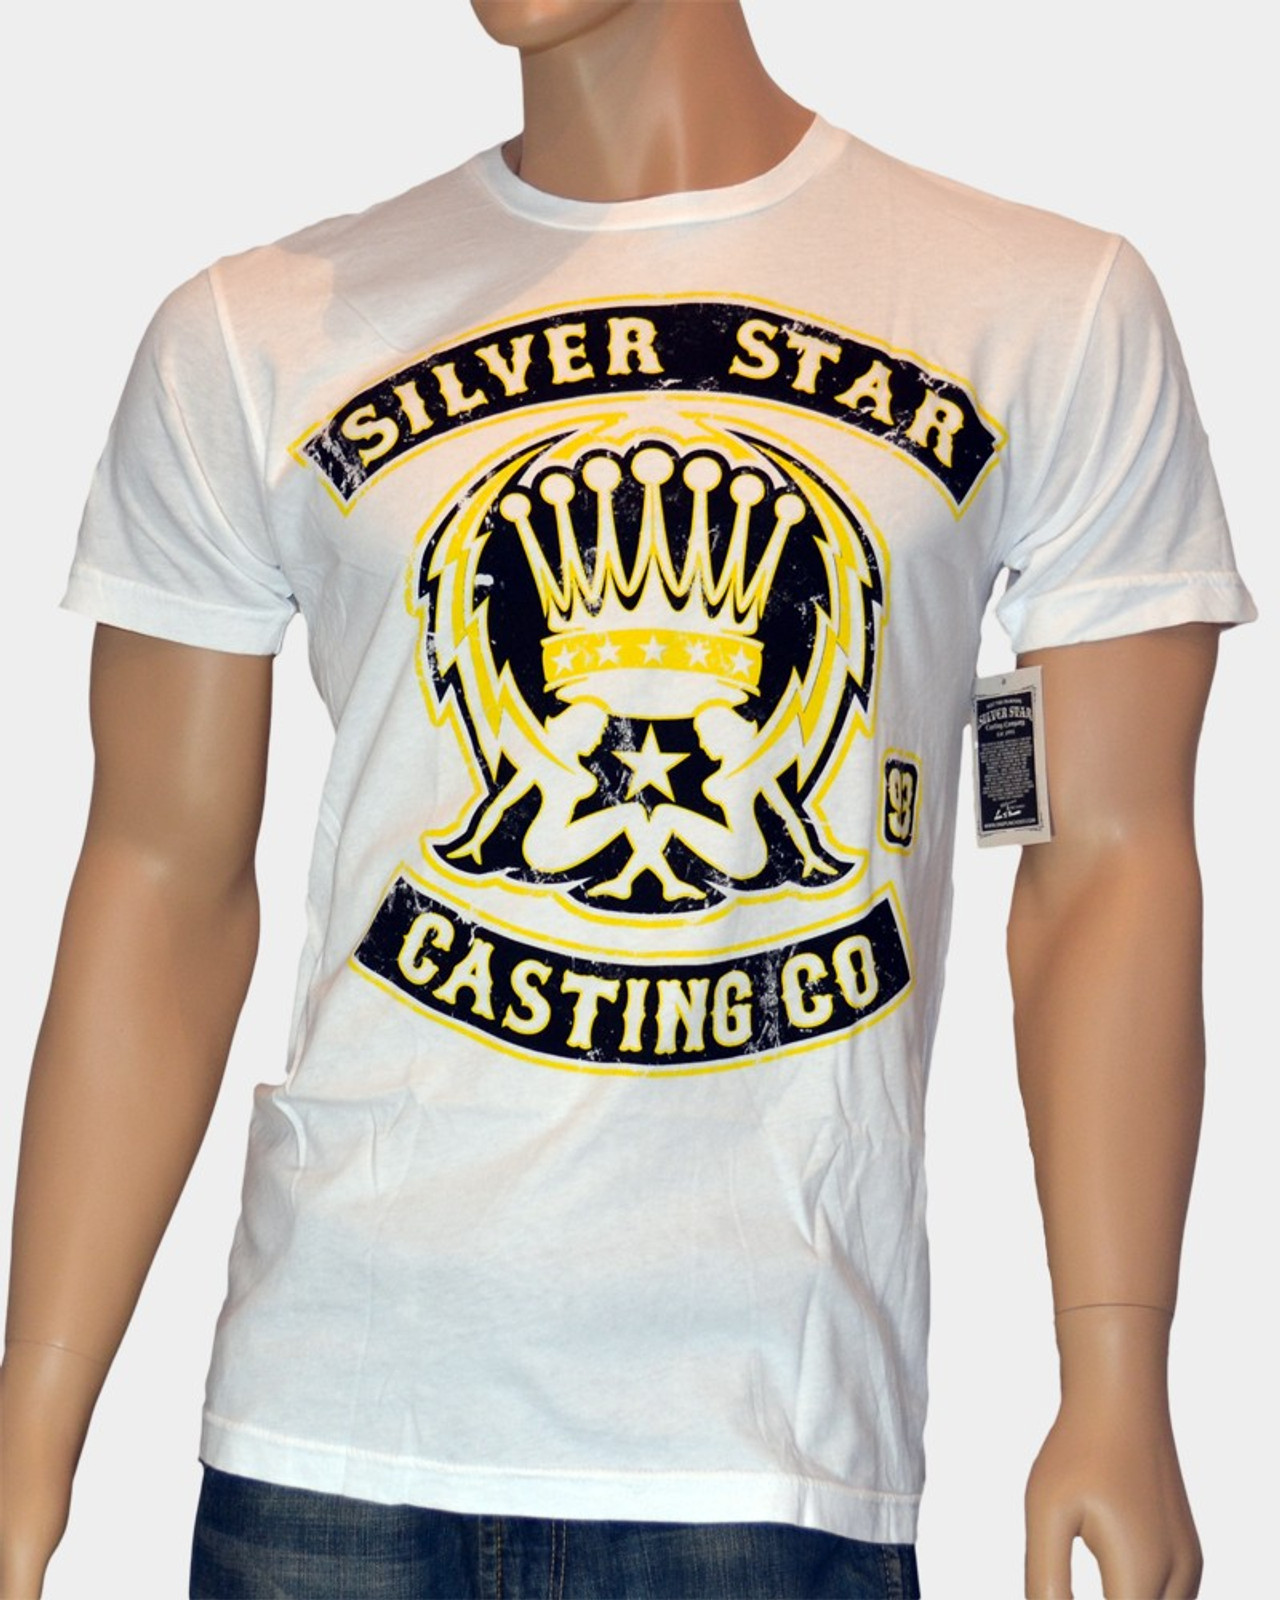 Silver Star T-Shirt Support